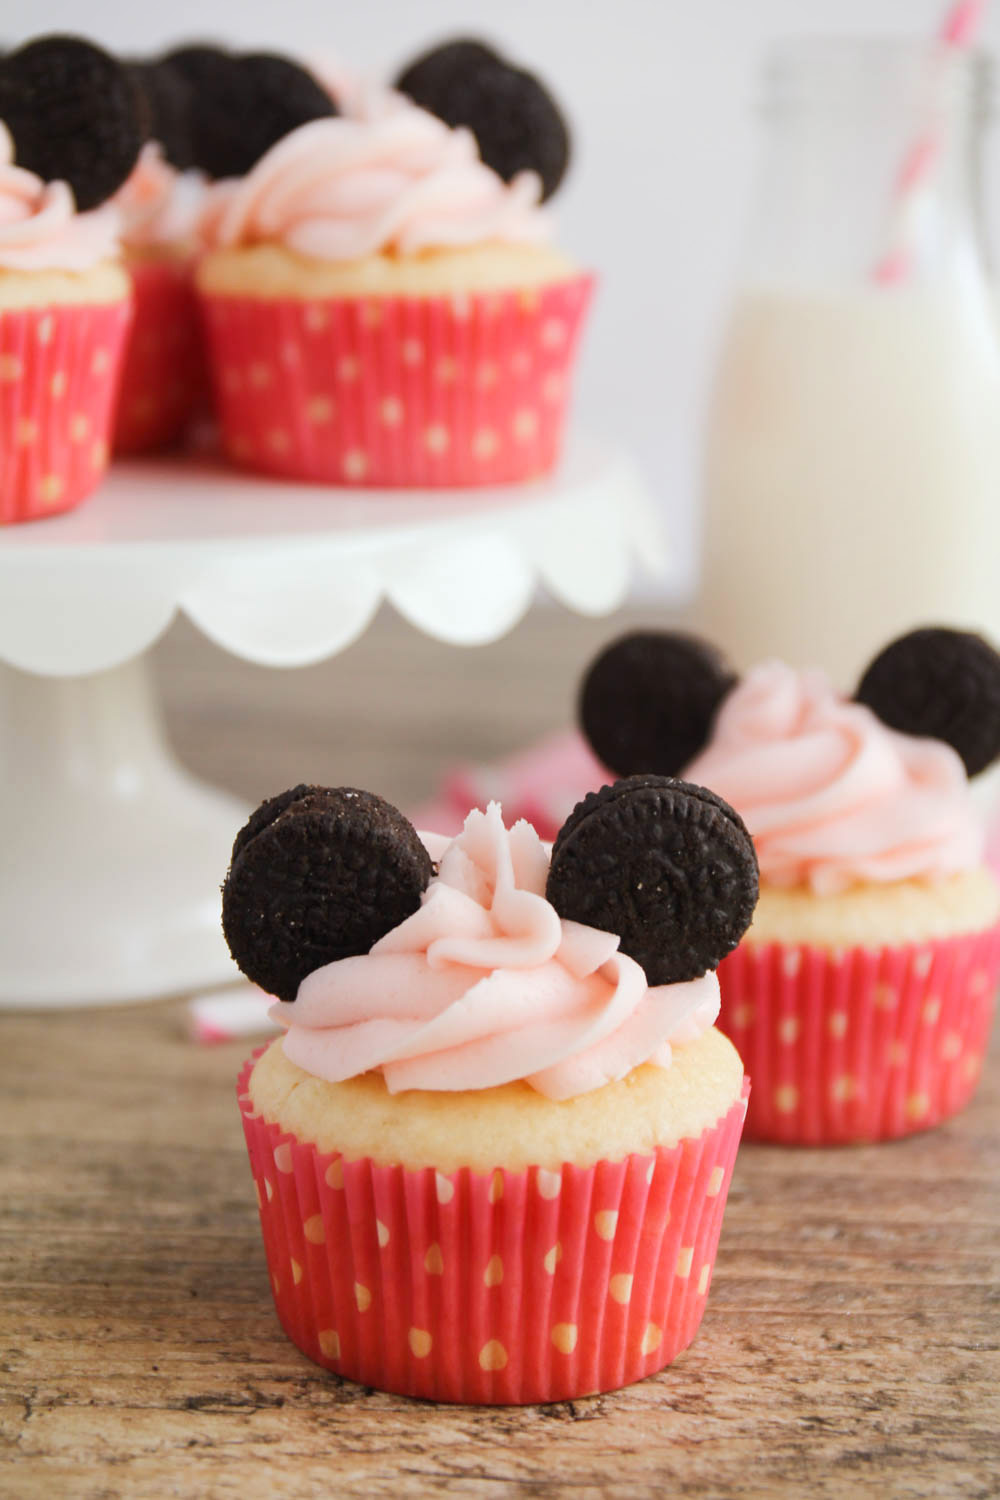 These Minnie Mouse cupcakes are adorable and so easy to make. Perfect for a little girl's birthday party!